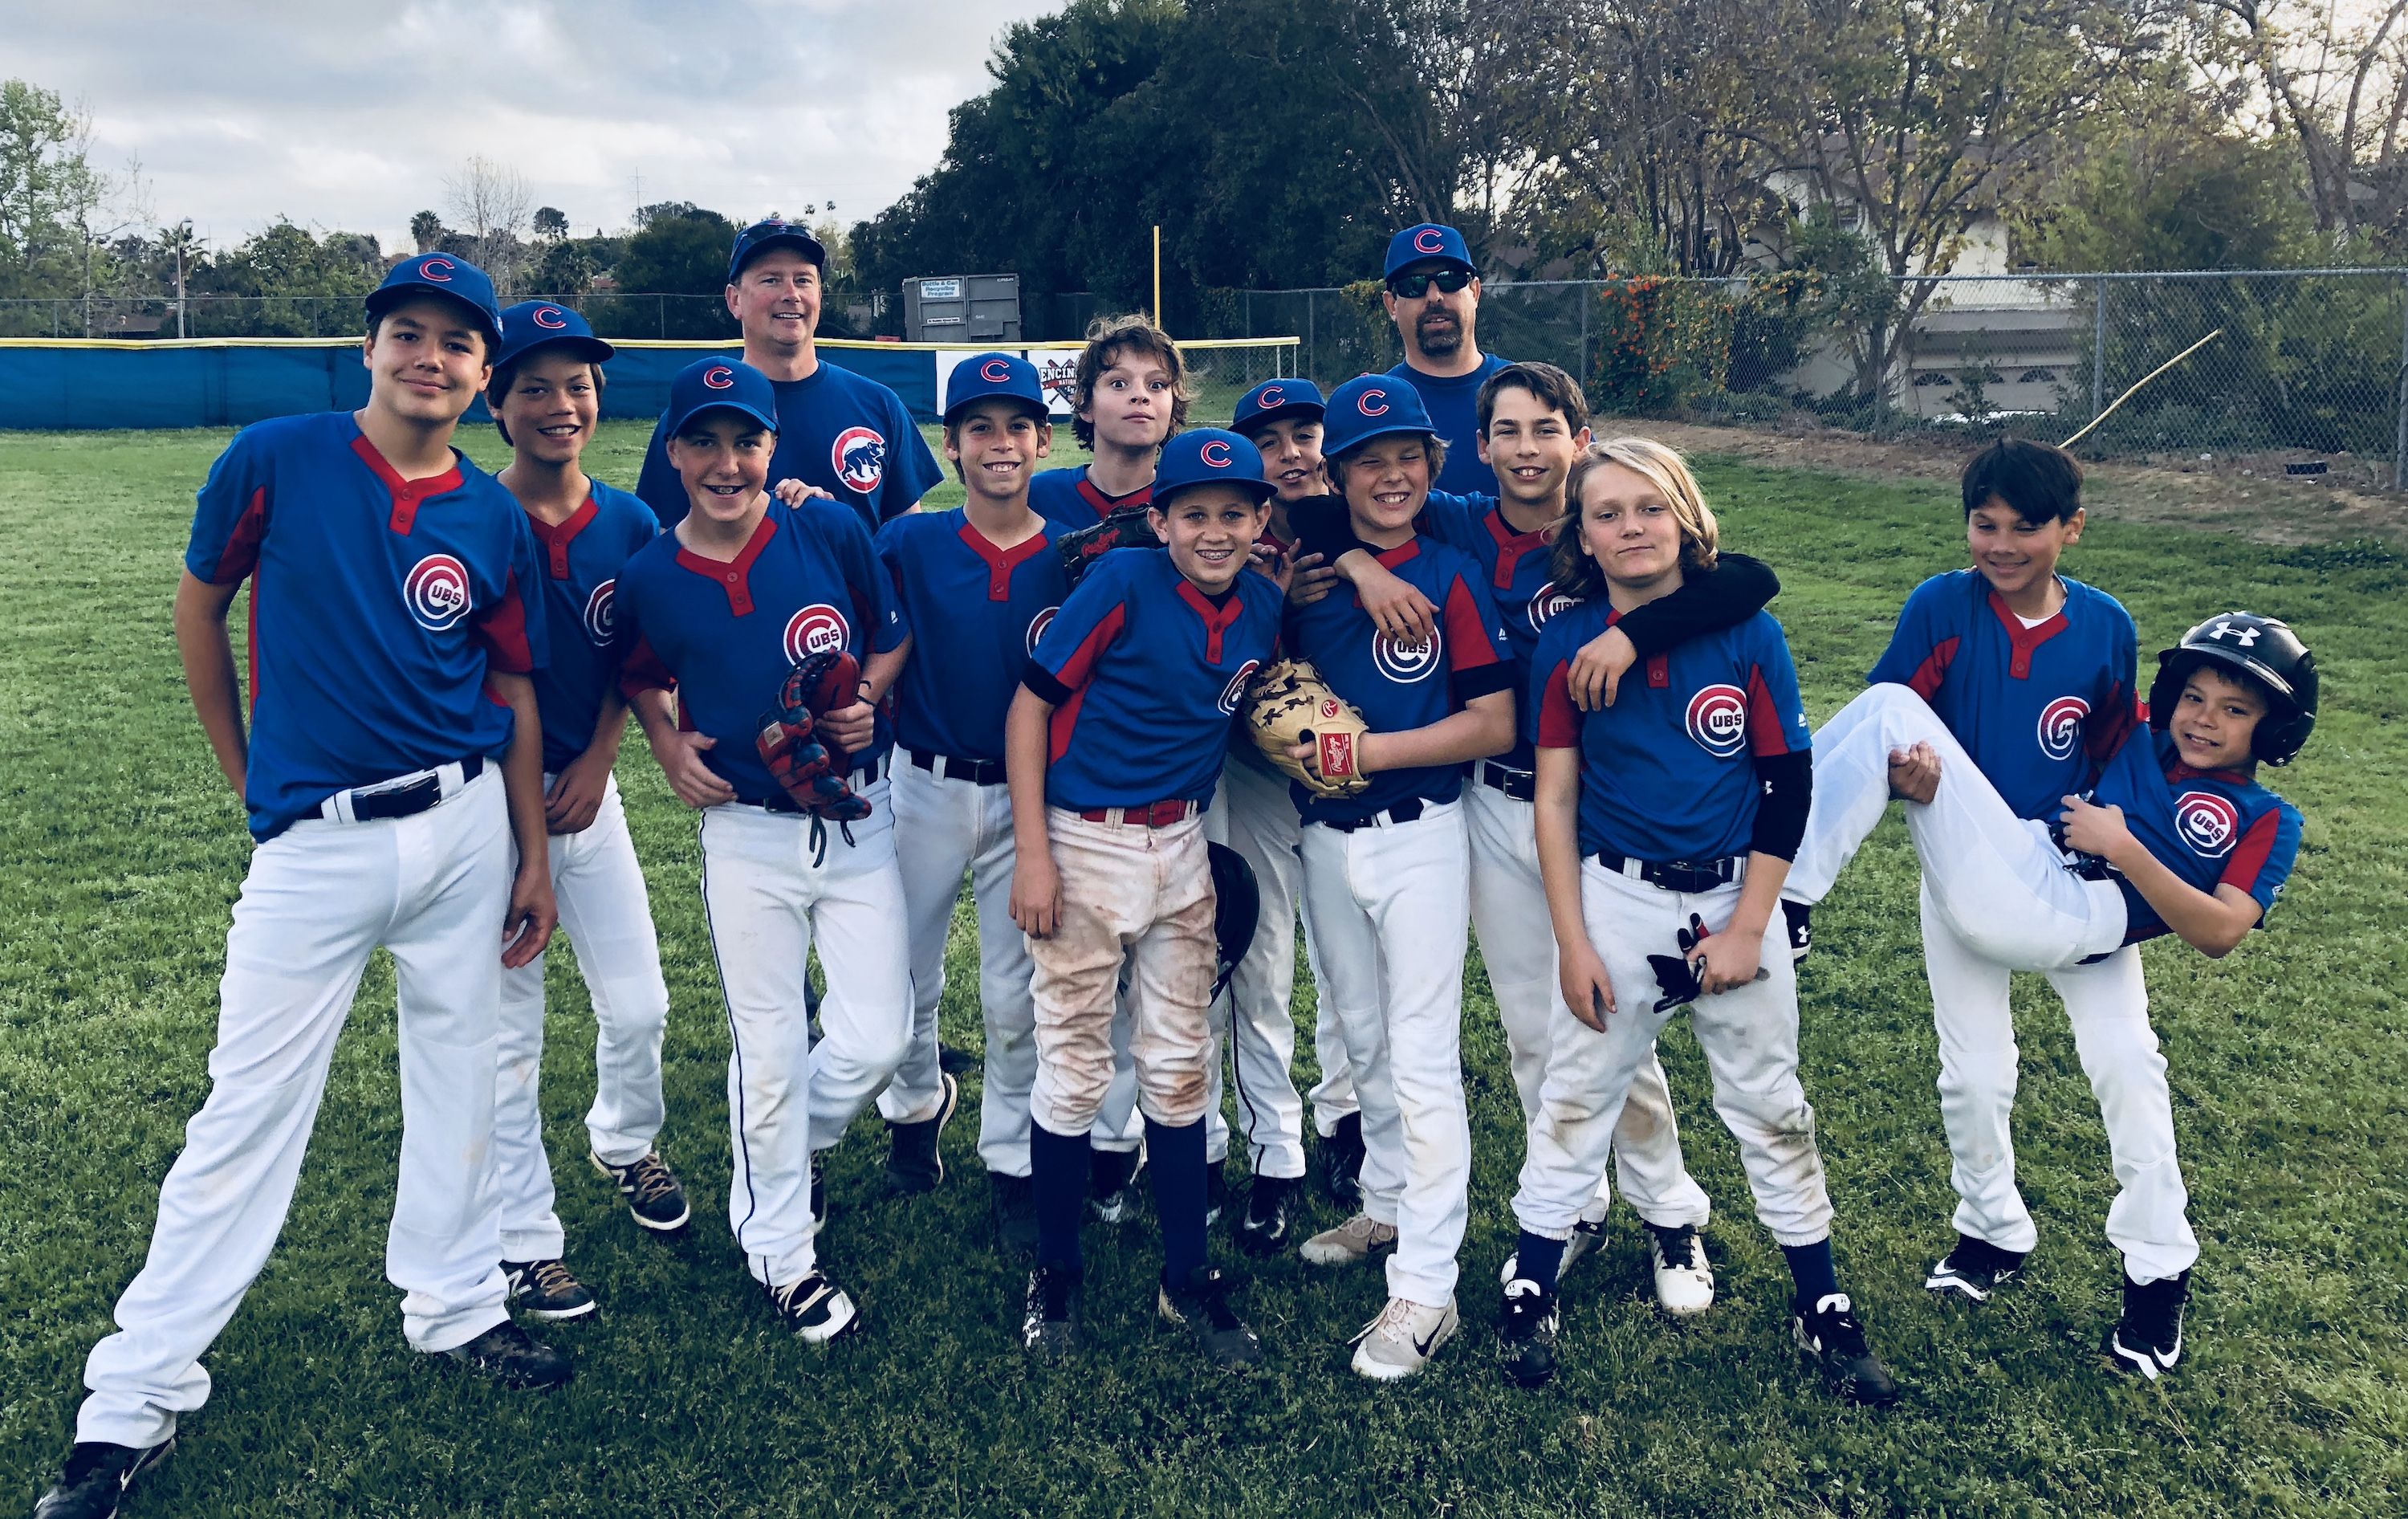 The Encinitas National Little League Cubs Lost 2 9 But Are Still Smiling Aci Is Rooting For Them Littleleague Sponsor Baseb Cubs Lose Little League League